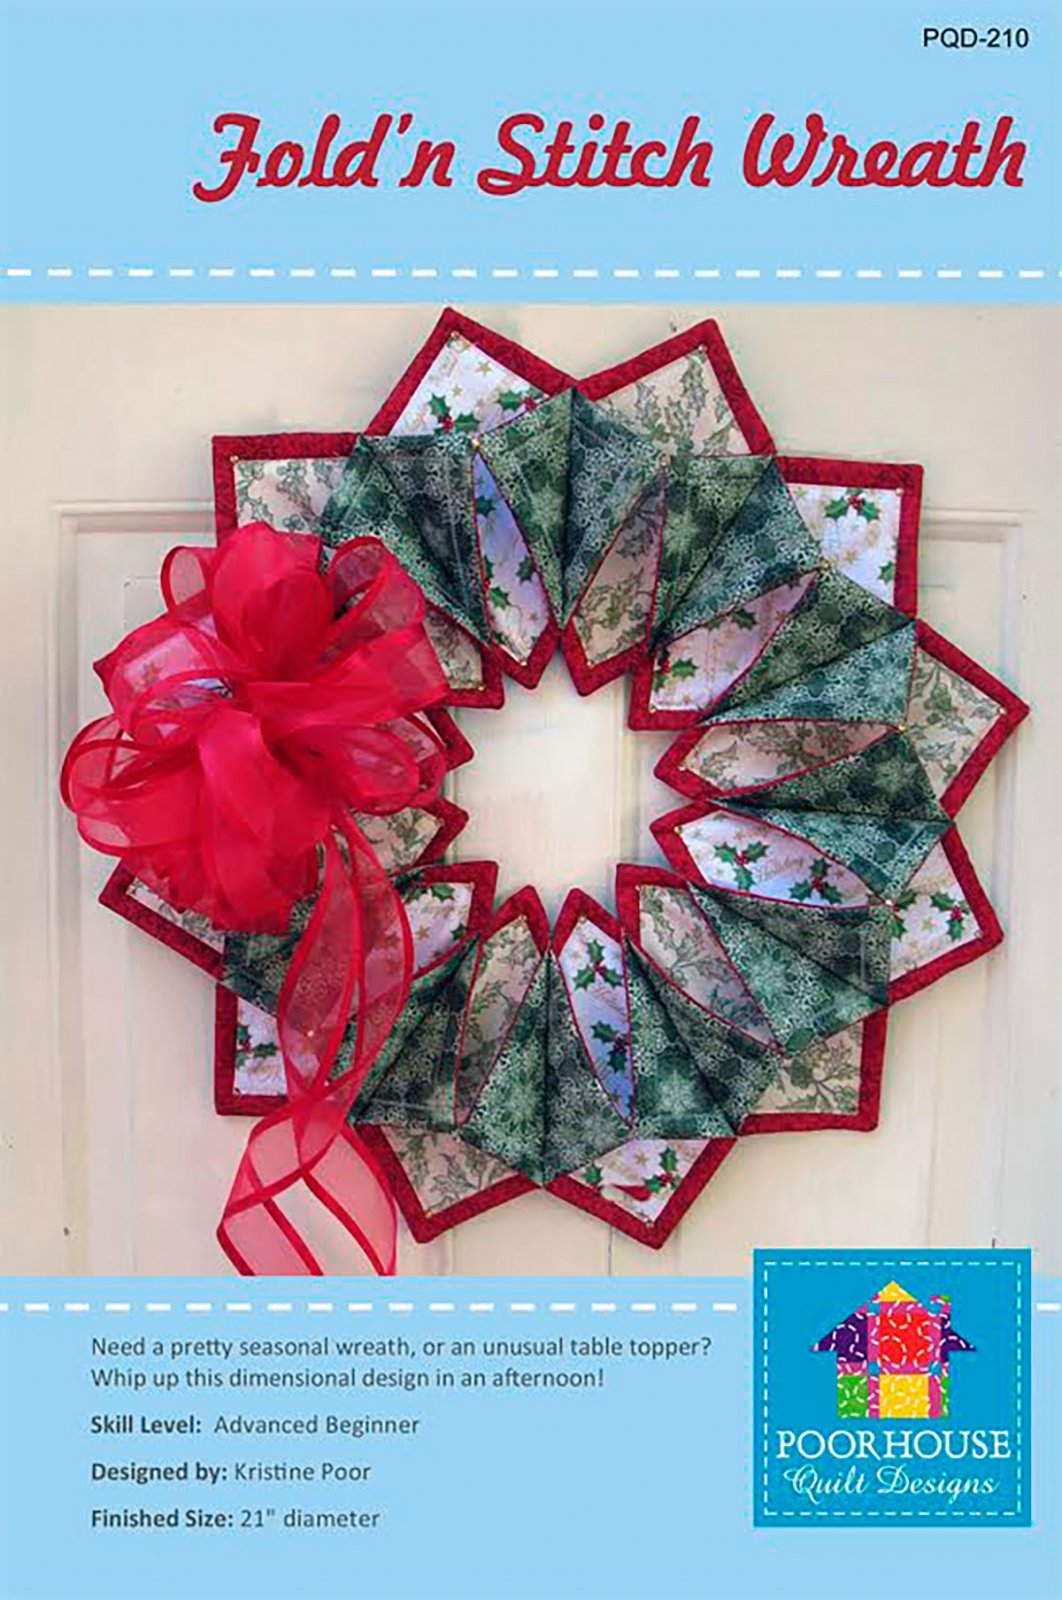 Fold n' Stitch Wreath Pattern by Poorhouse Quilt Designs